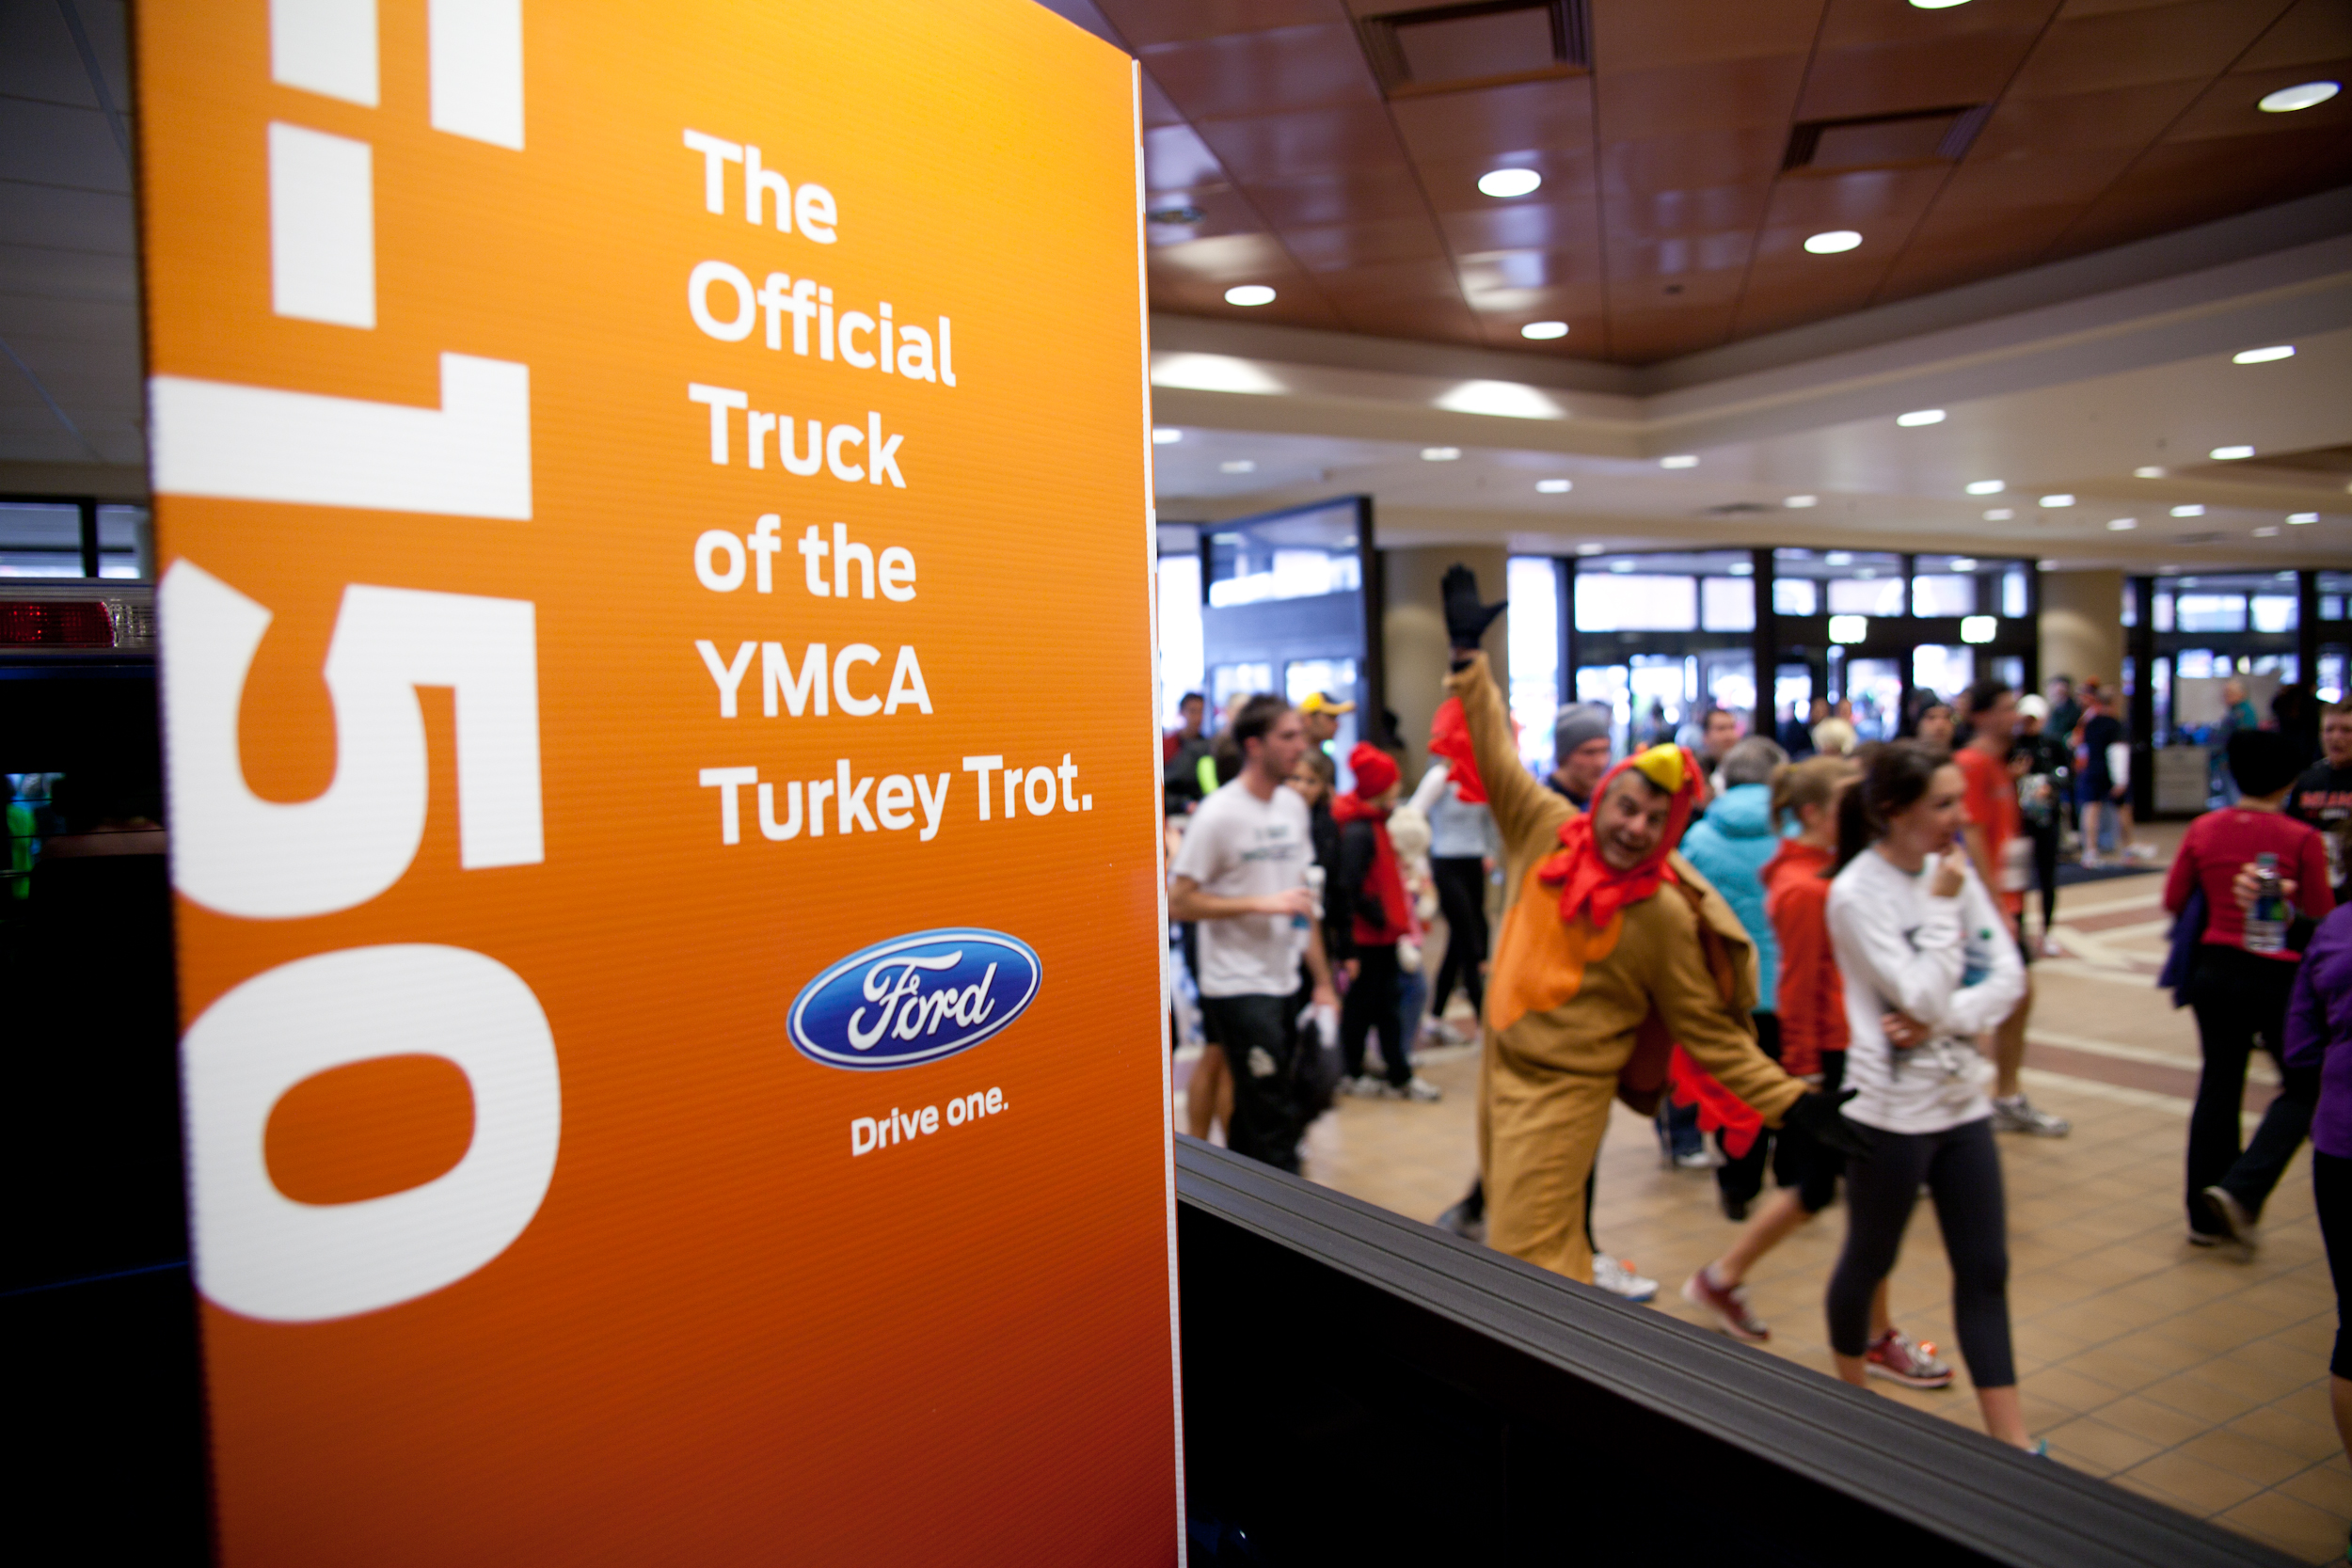 The mascot is excited that WNY Ford sponsored the 116th annual YMCA Turkey Trot.